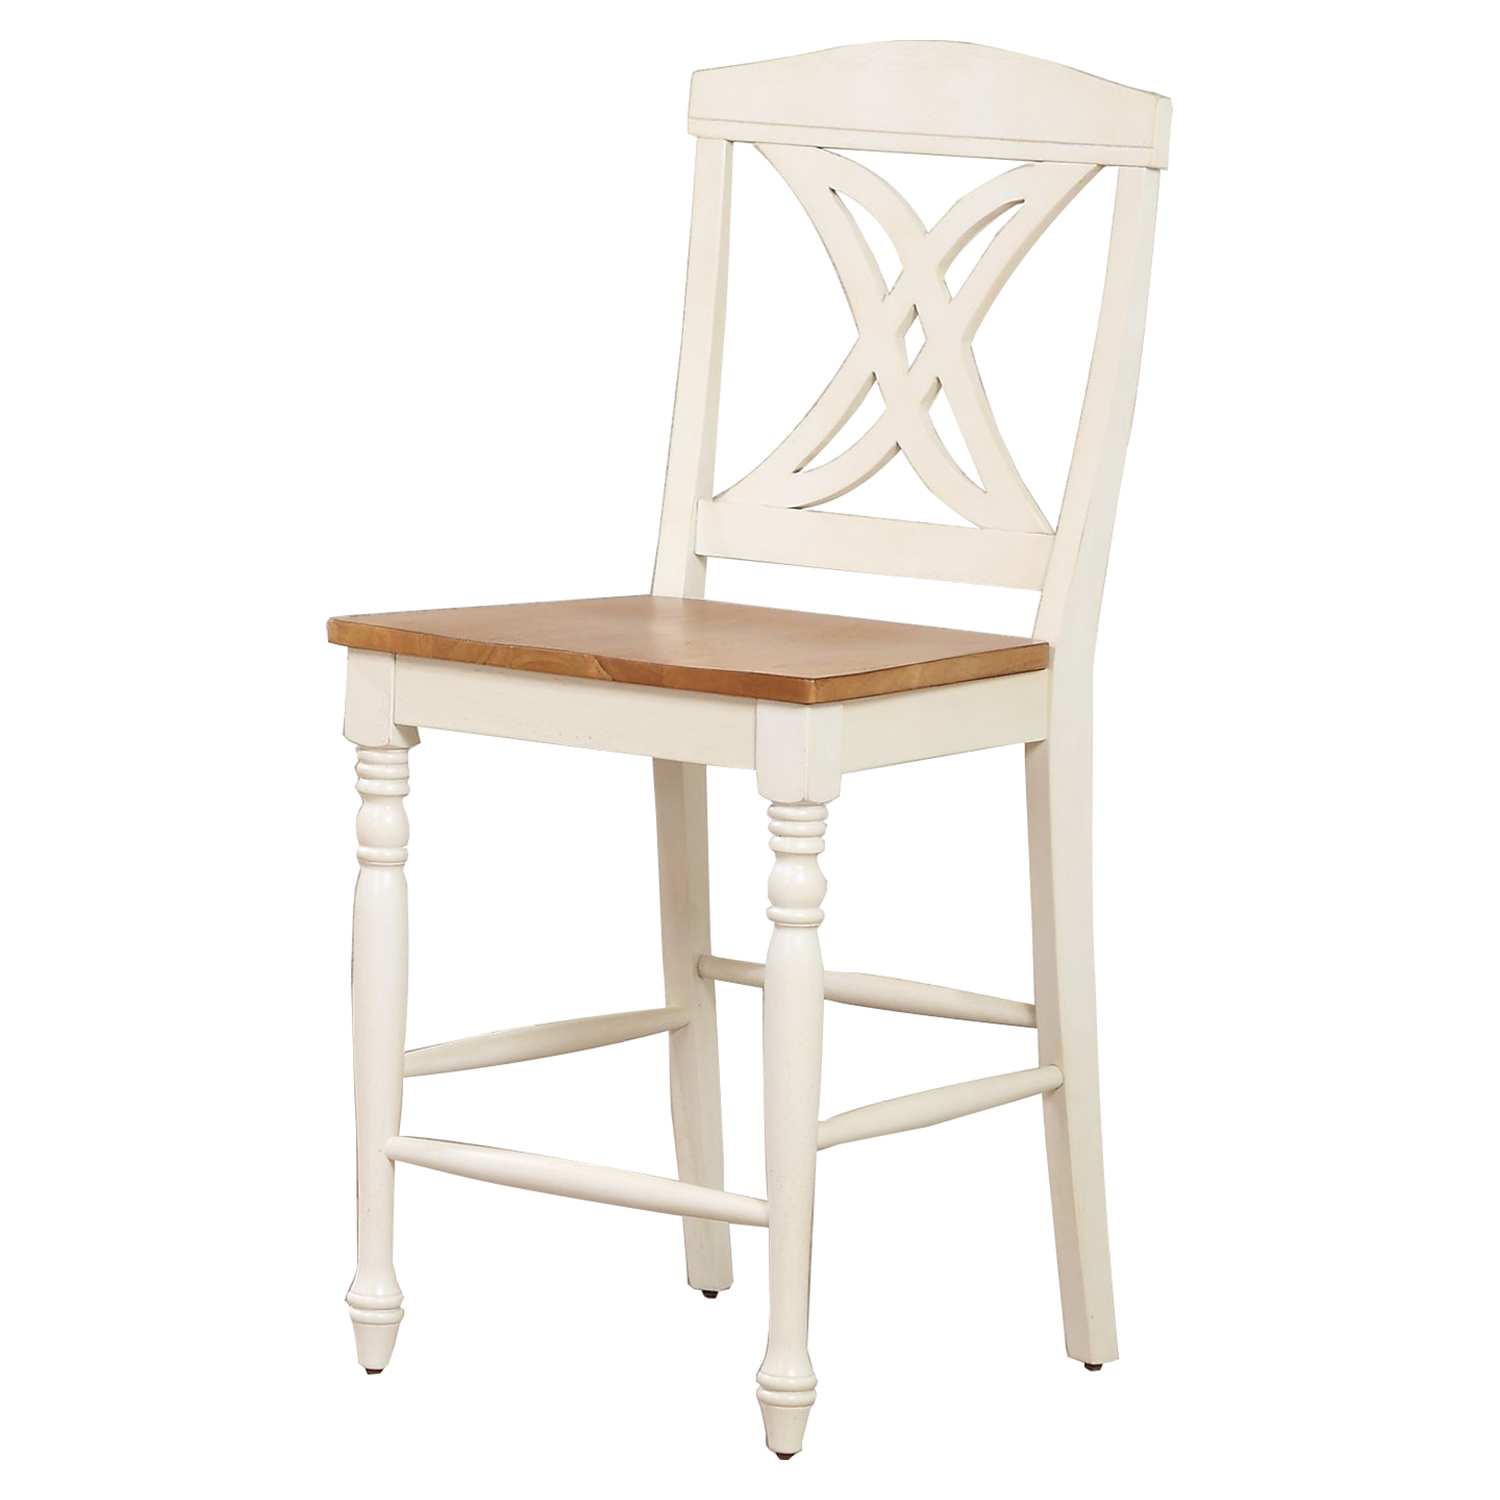 "Butterfly Back 24"" Counter Stool - Caramel and Biscotti - ICON-STC50-CL-BI"